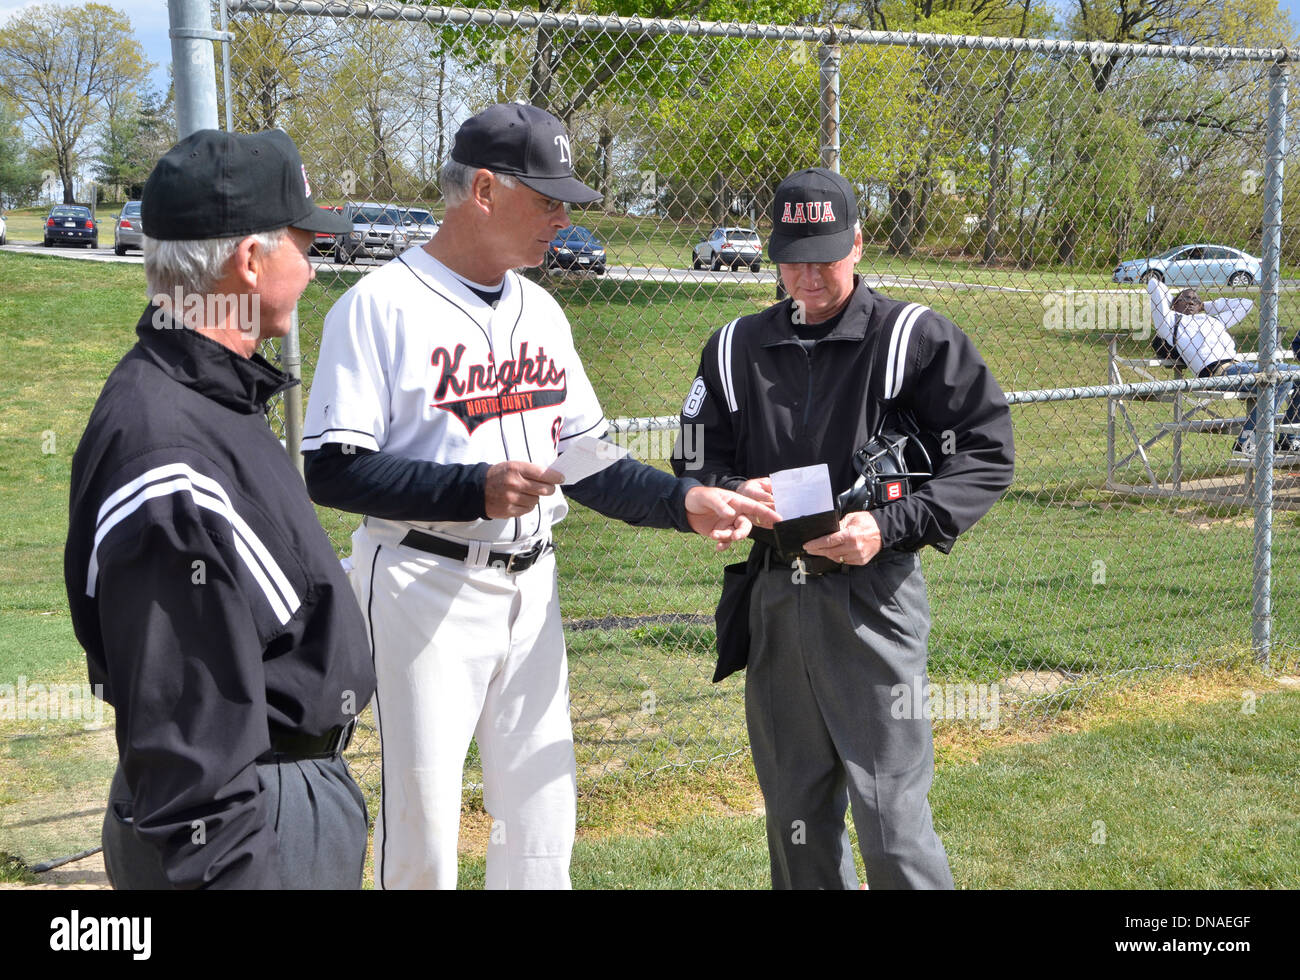 coach gives lineups to umpires in a baseball game - Stock Image